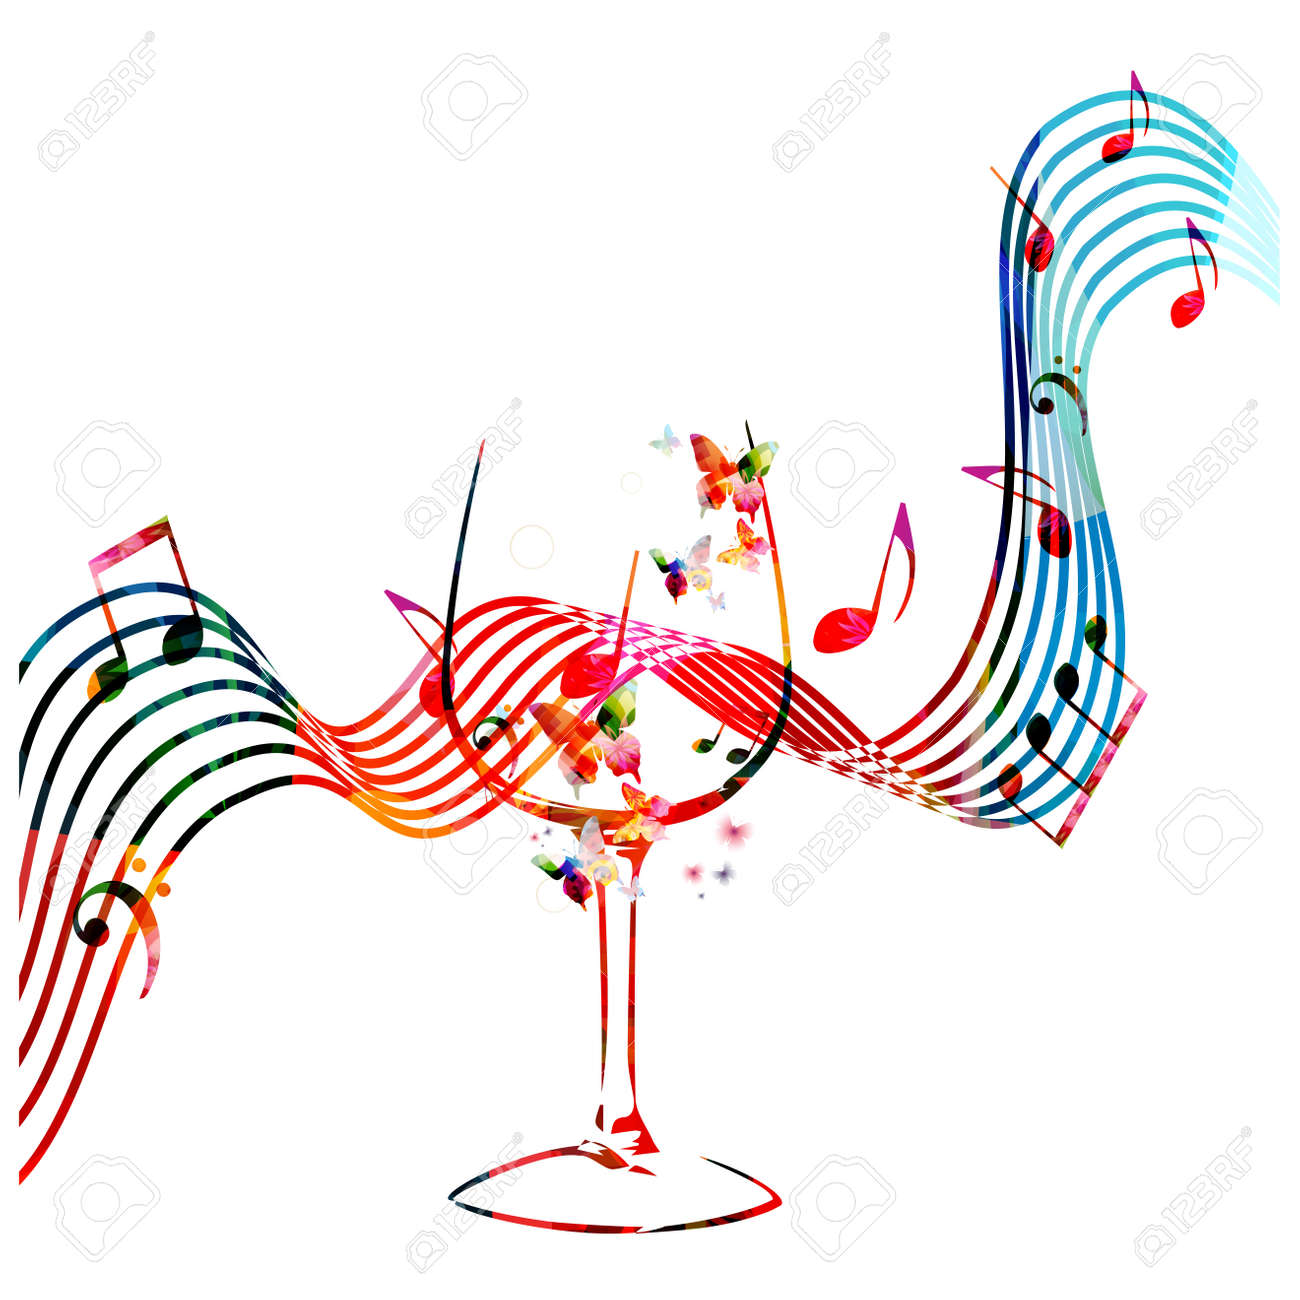 Colorful wineglass with music notes isolated vector illustration. Background for restaurant poster, restaurant menu, music events and festivals - 78070268